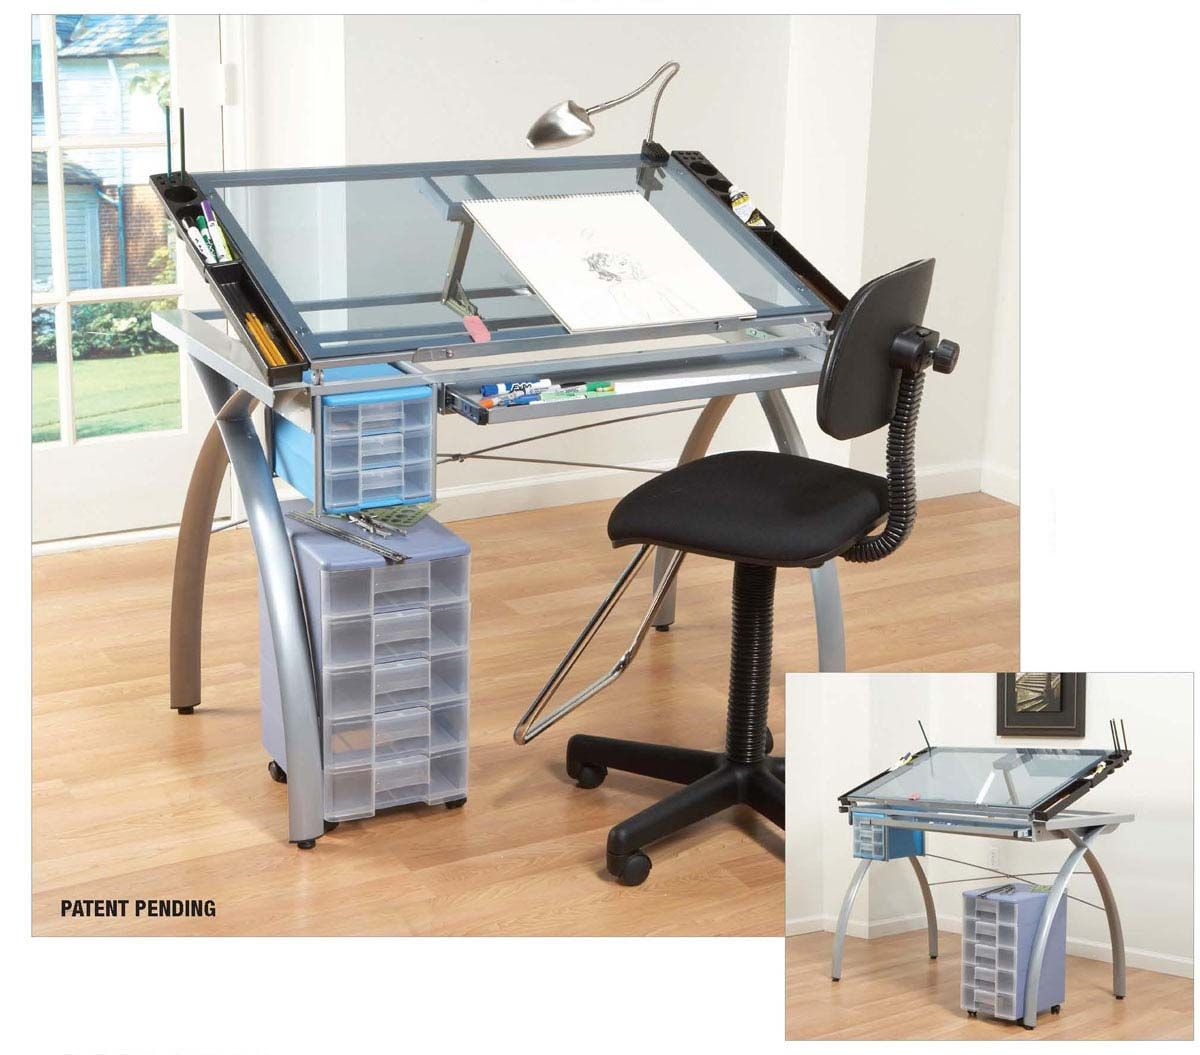 Glass_top_large Jpg 1 200 1 055 Pixels Drafting Tables  # Muebles Tubulares Ponce